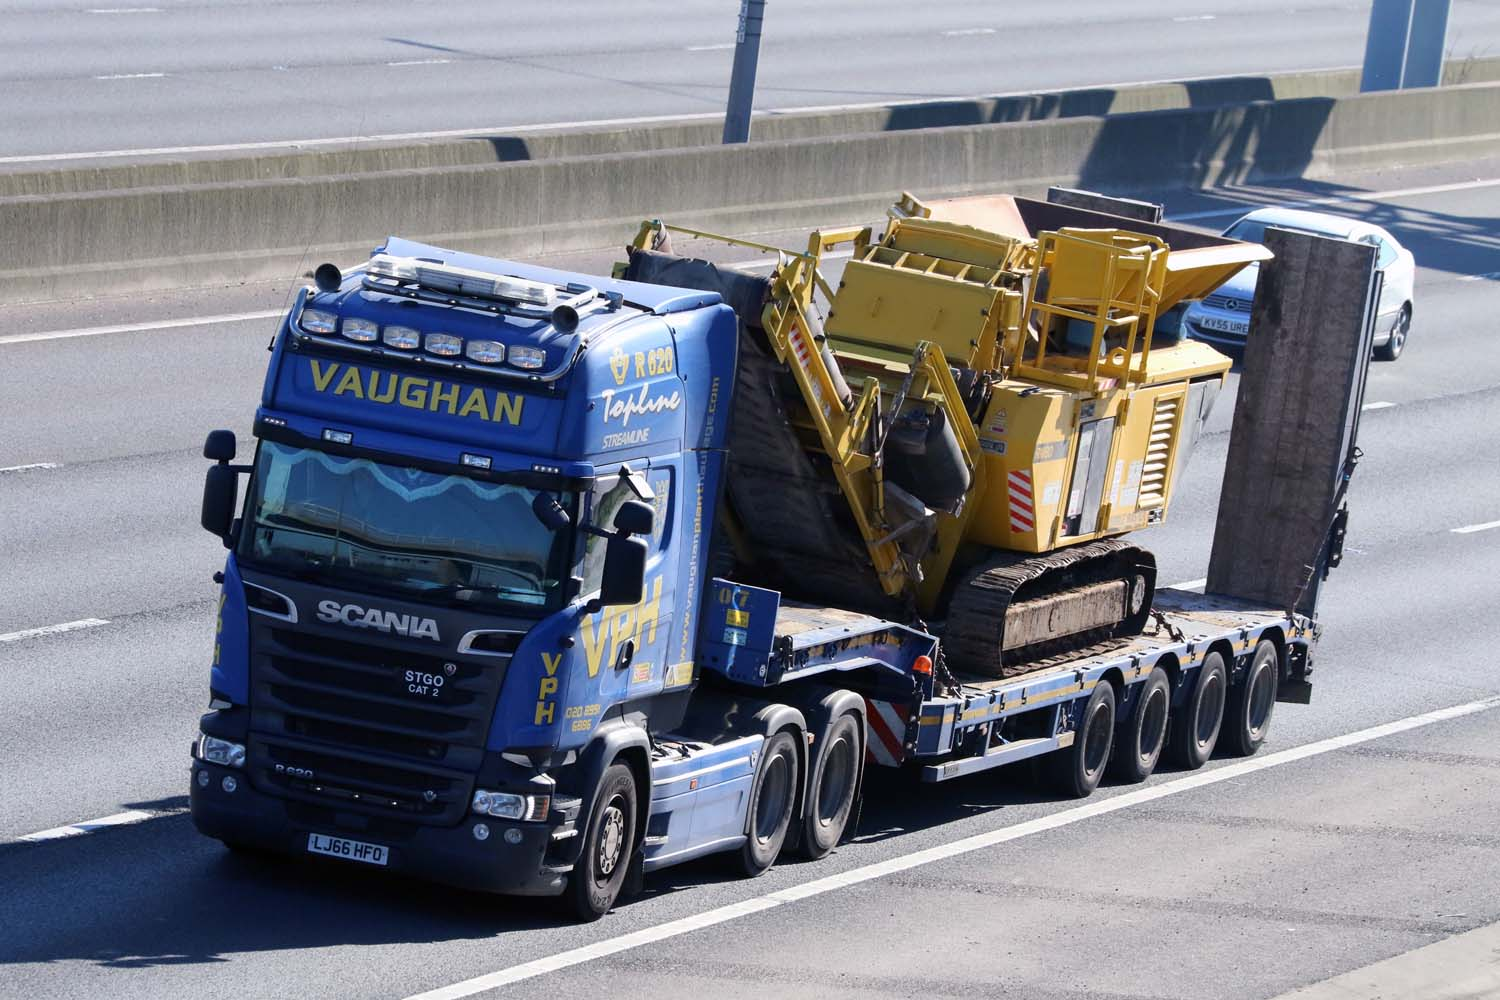 abnormal haulage services